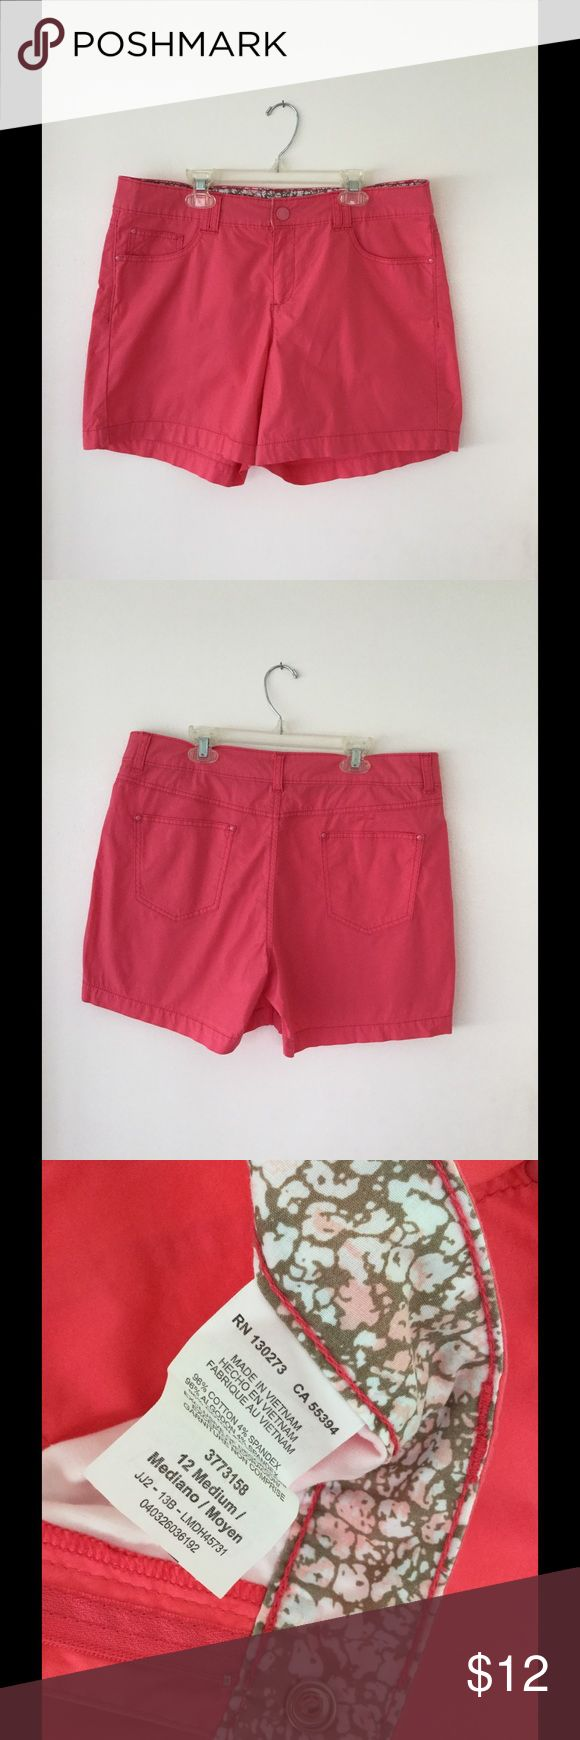 """Lee women's pink shorts size 12 medium. Lee brand women's pink shorts in size 12 medium. 4 1/2"""" inseam. Front and back pockets. Snap & zipper front closure. Belt loops. 96% cotton/2% spandex. Nice light and comfortable material. Natural fit just below the waist. Like new condition. Lee Shorts"""